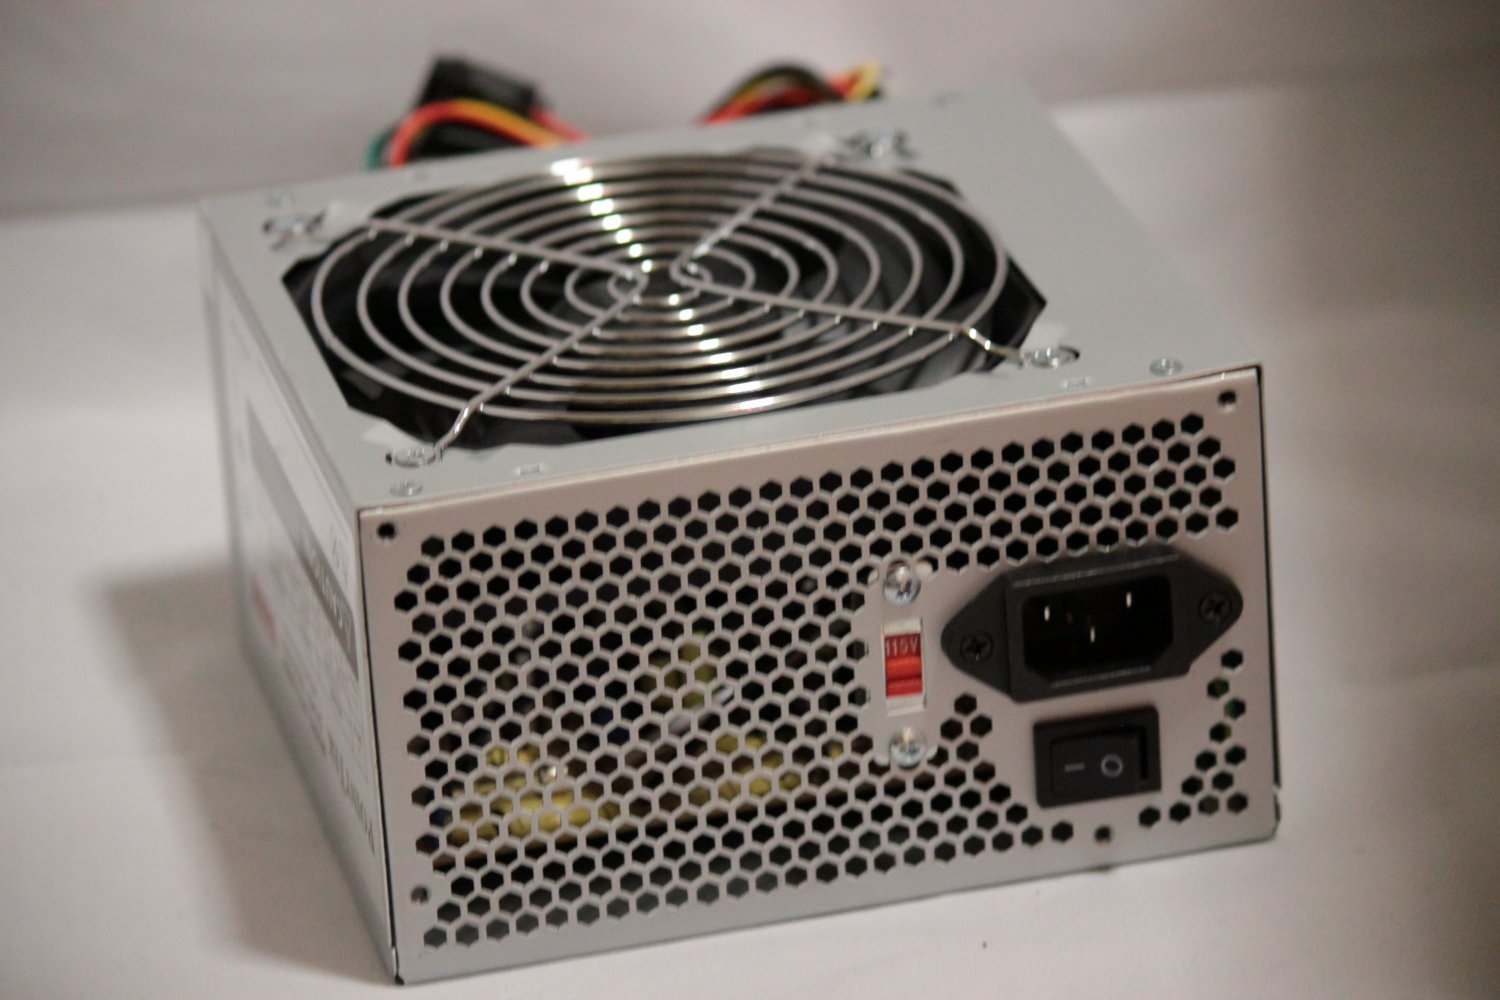 600W Power Supply For Emachine, Enlight, and Ever Power